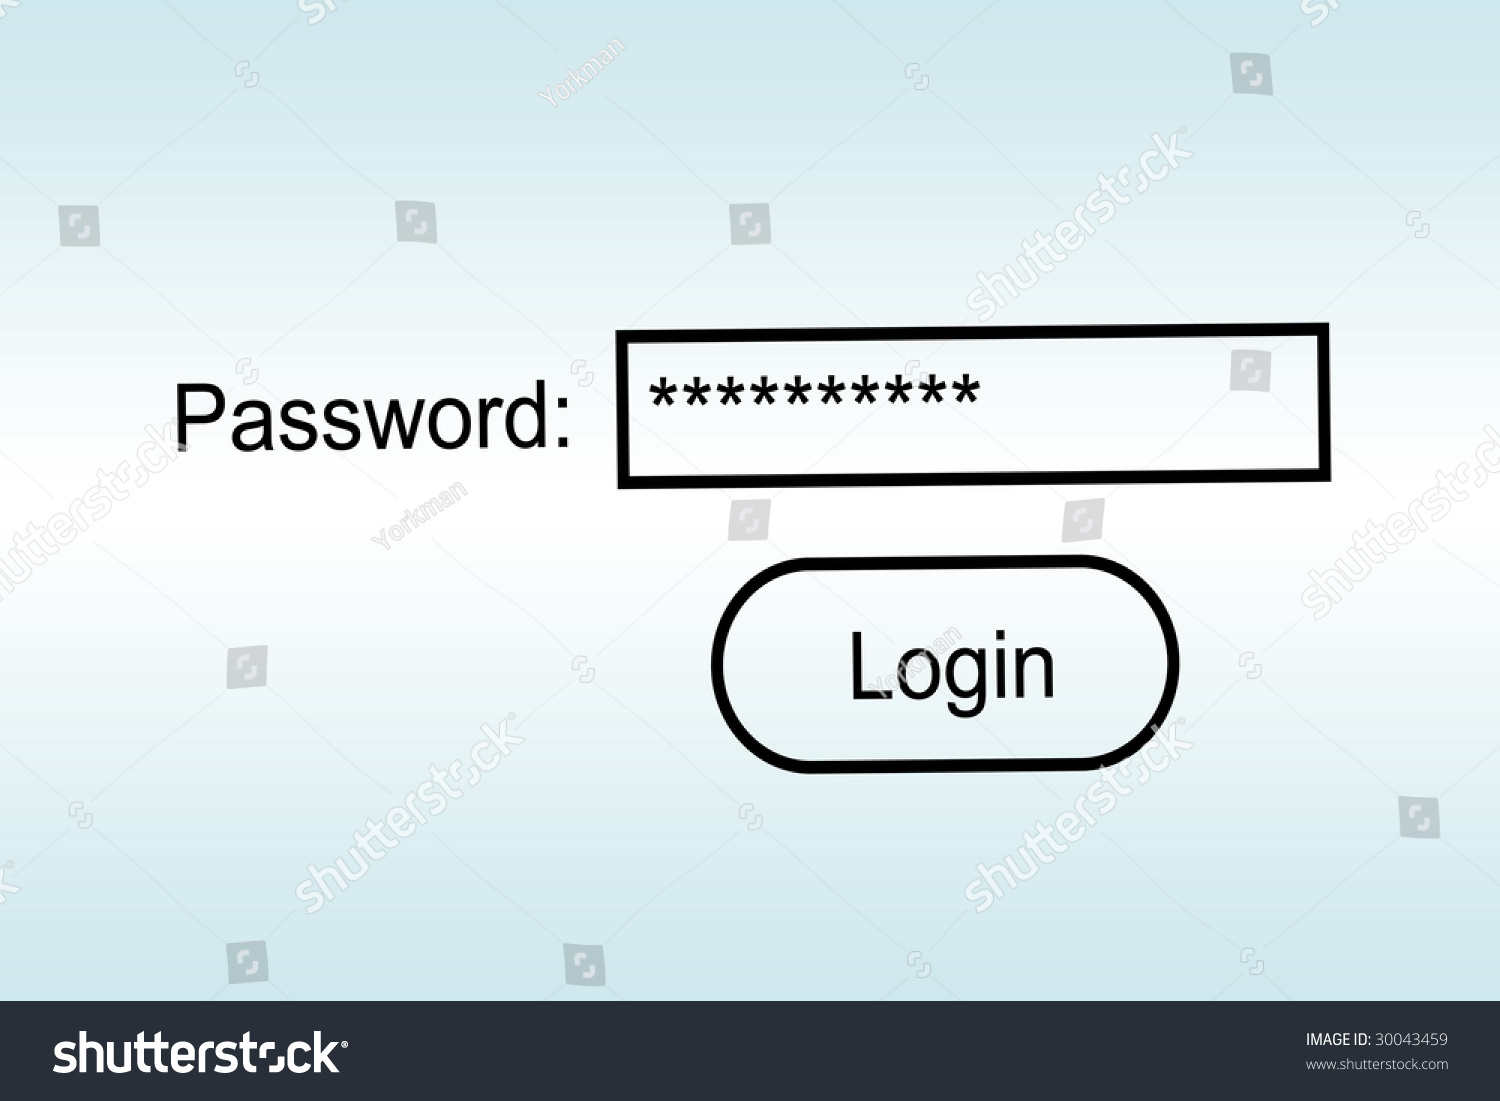 Simple internet password concept over white stock illustration simple internet password concept over white stock illustration 30043459 shutterstock ccuart Gallery